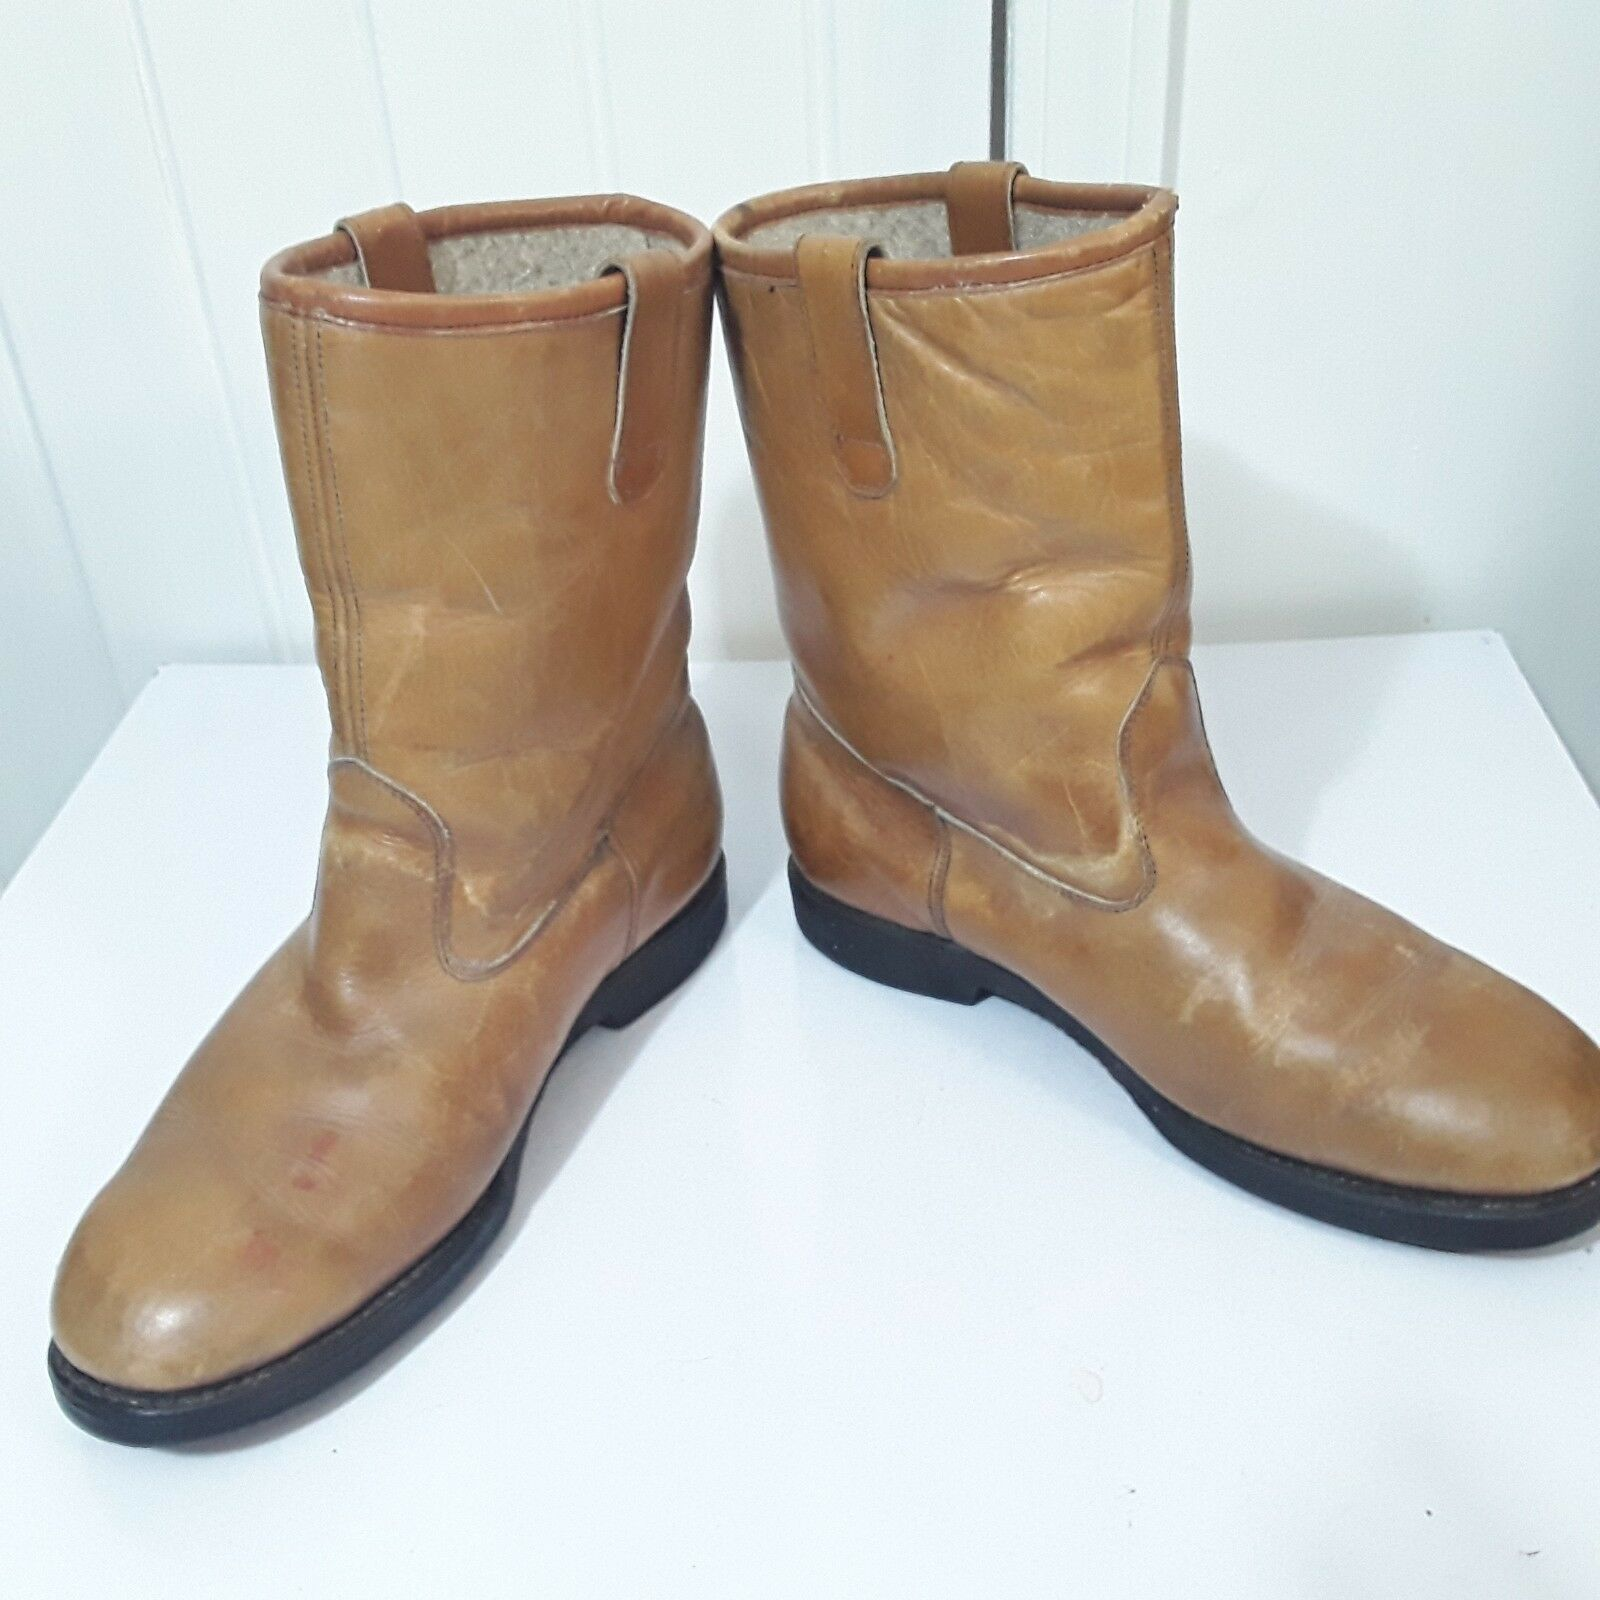 VTG USA MASON FIELD & STREAM Uomo BROWN 8.5 LEATHER INSULATED BOOTS SZ 8.5 BROWN EE 377022